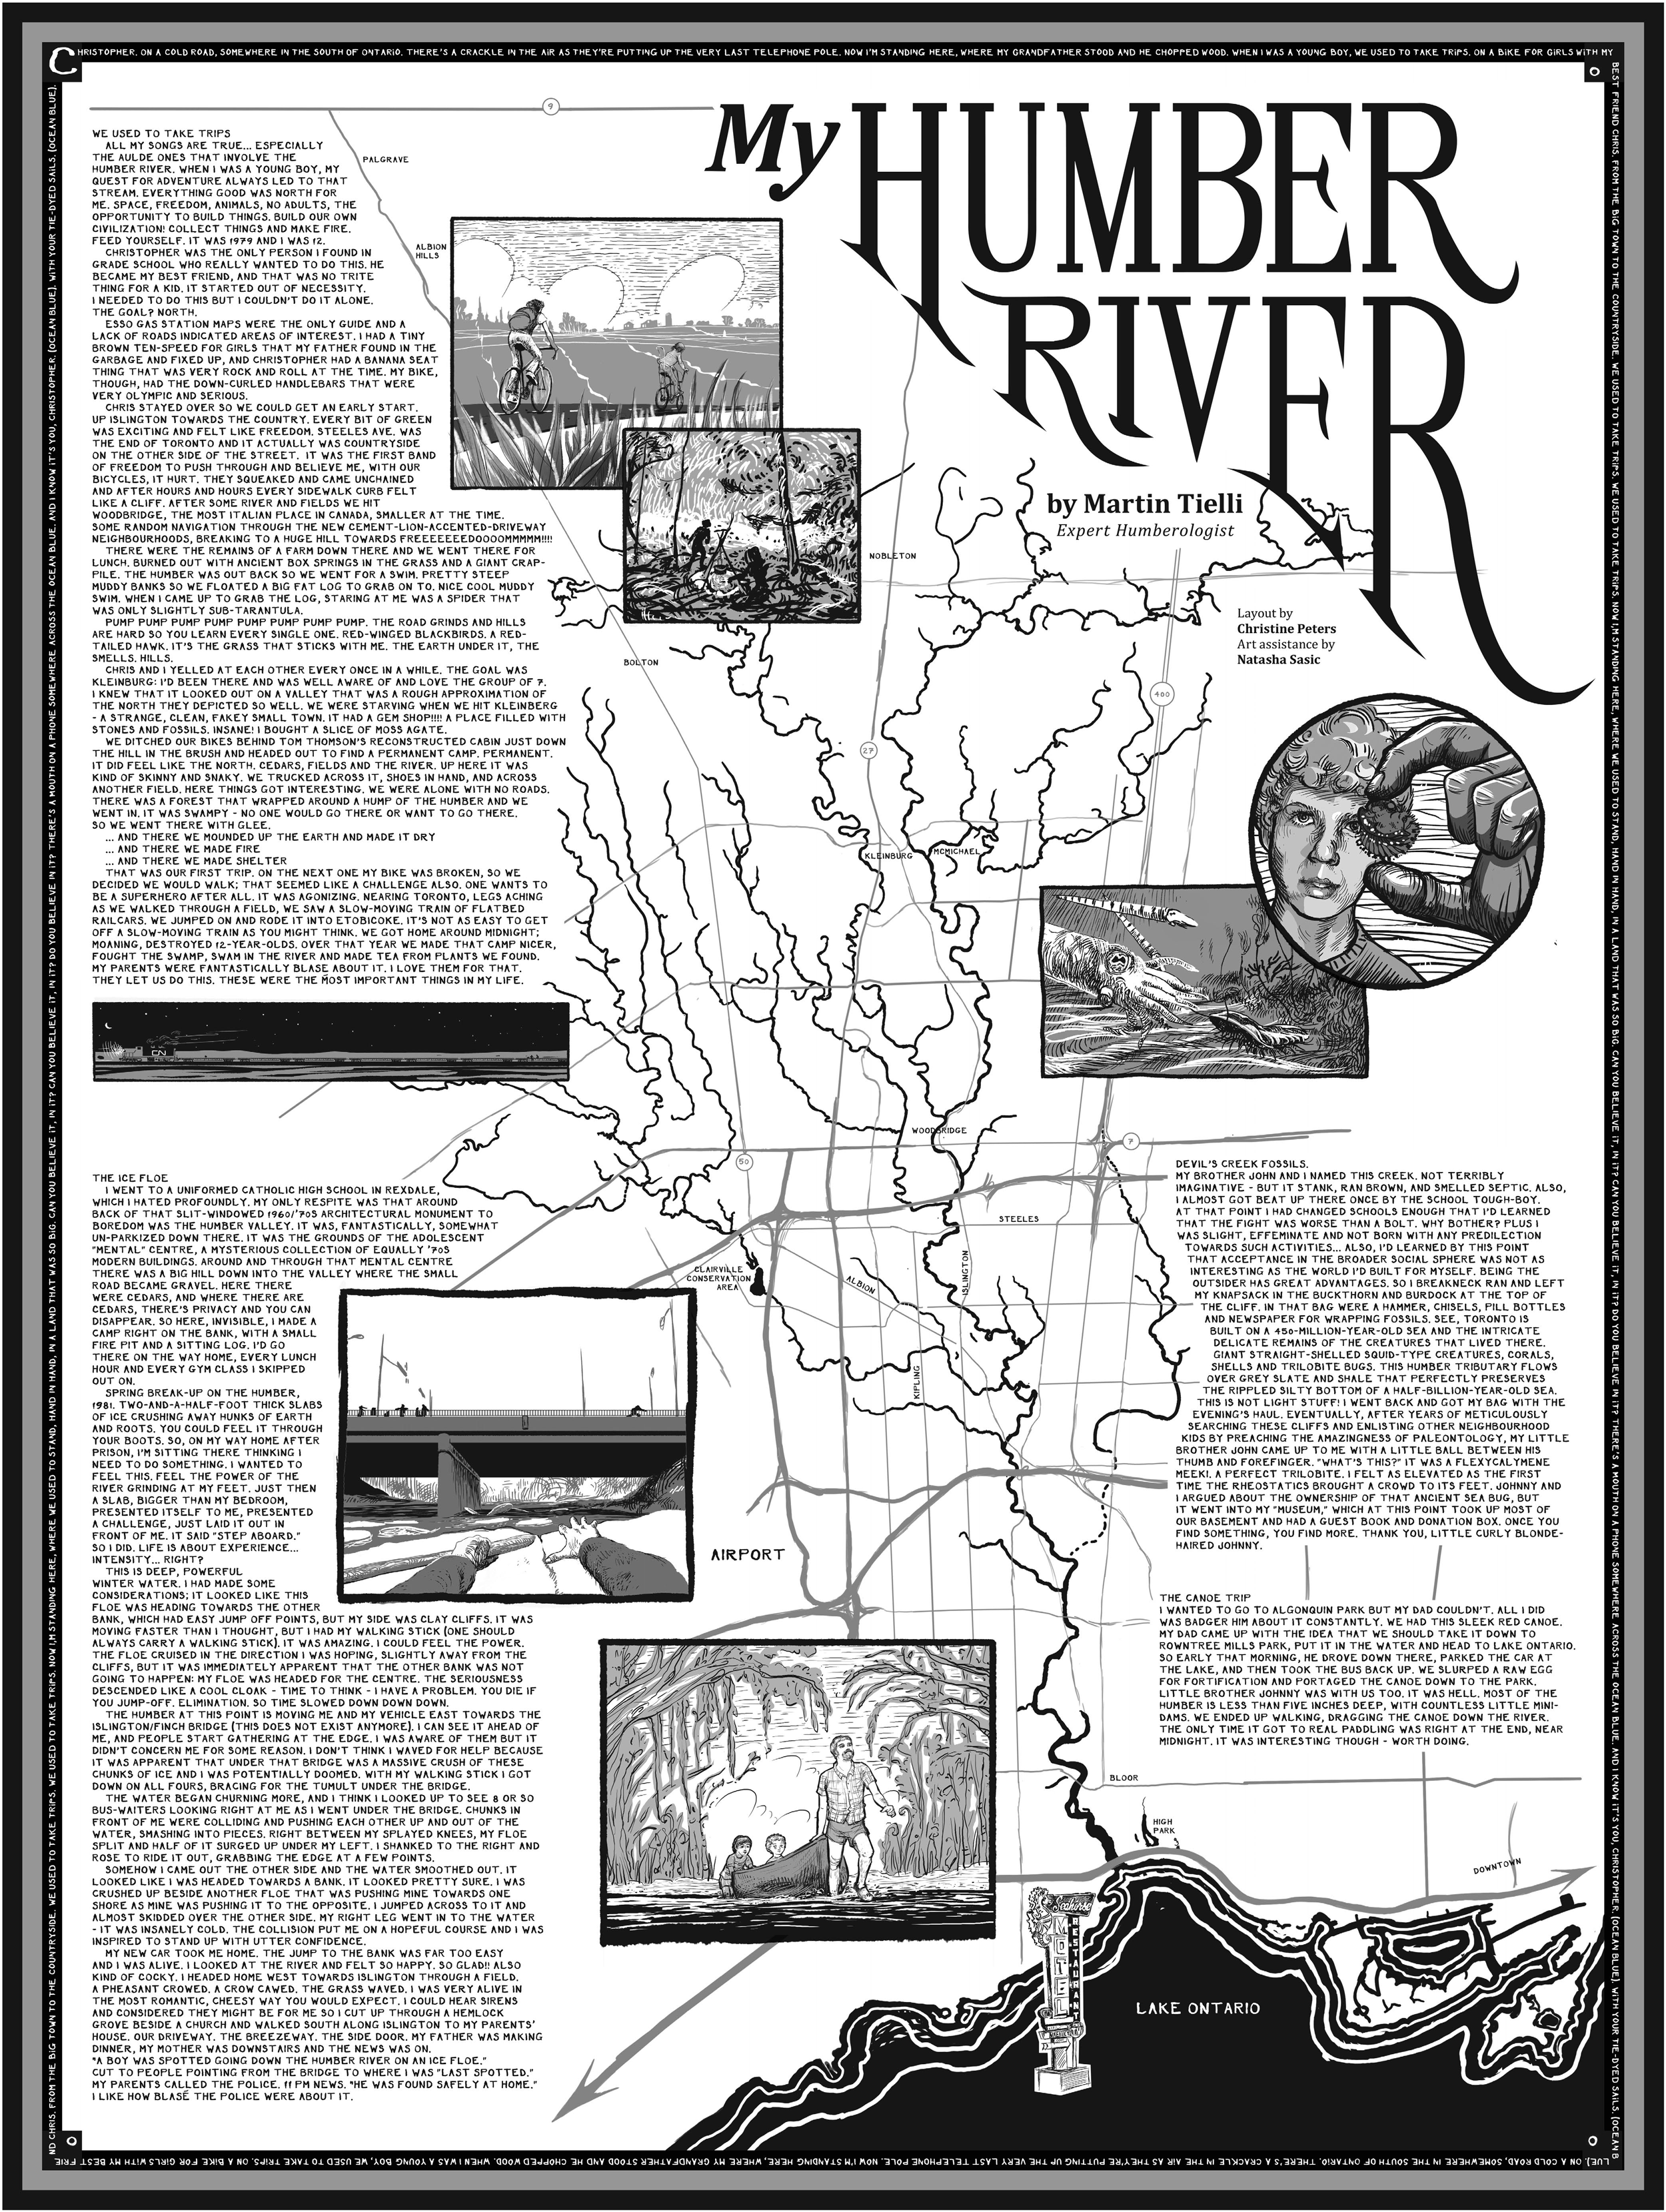 Humber River illustrated map & stories